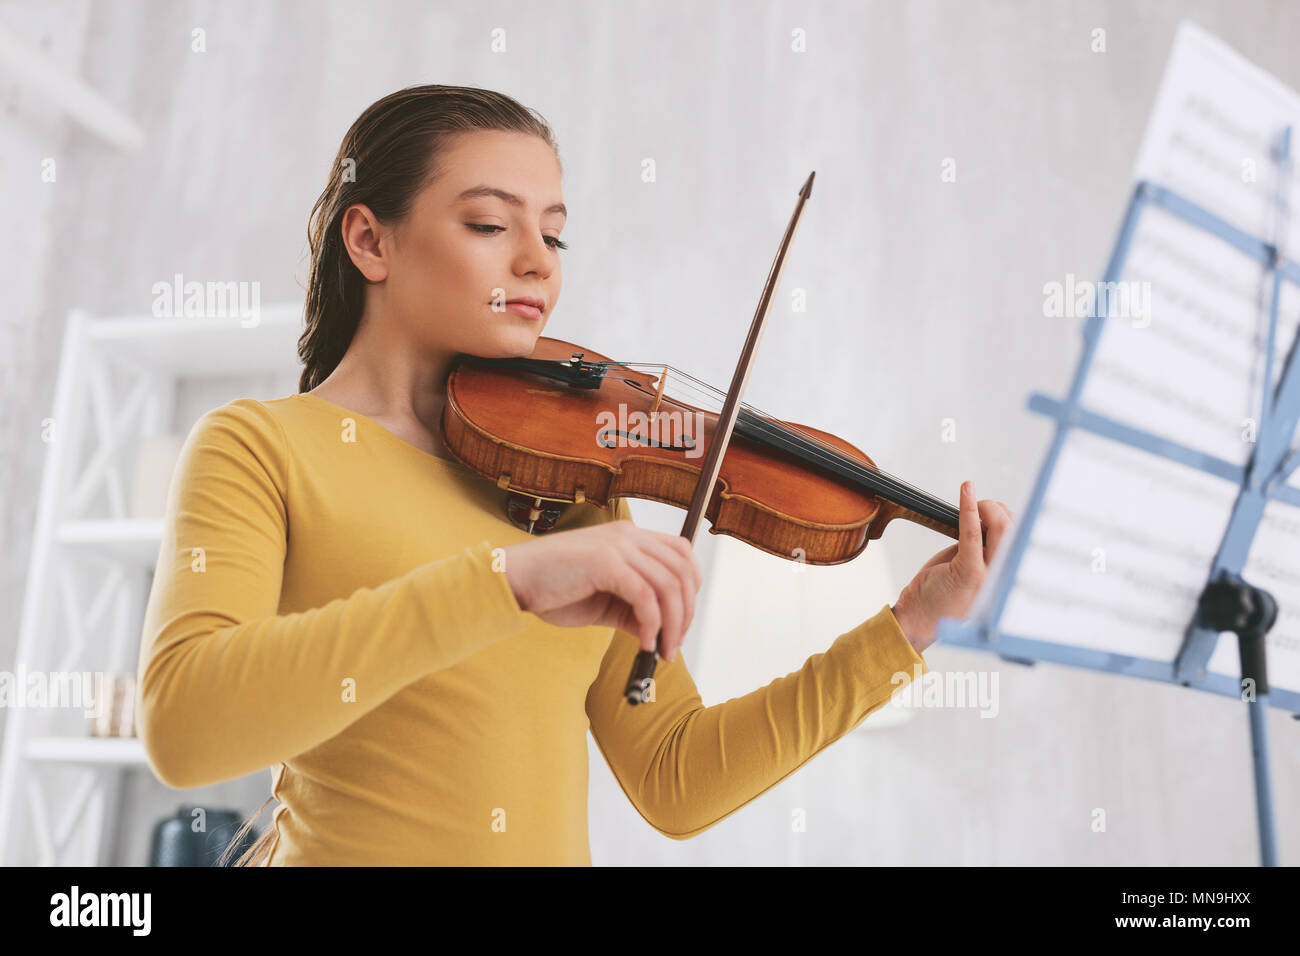 Concentrated musician playing serious work - Stock Image